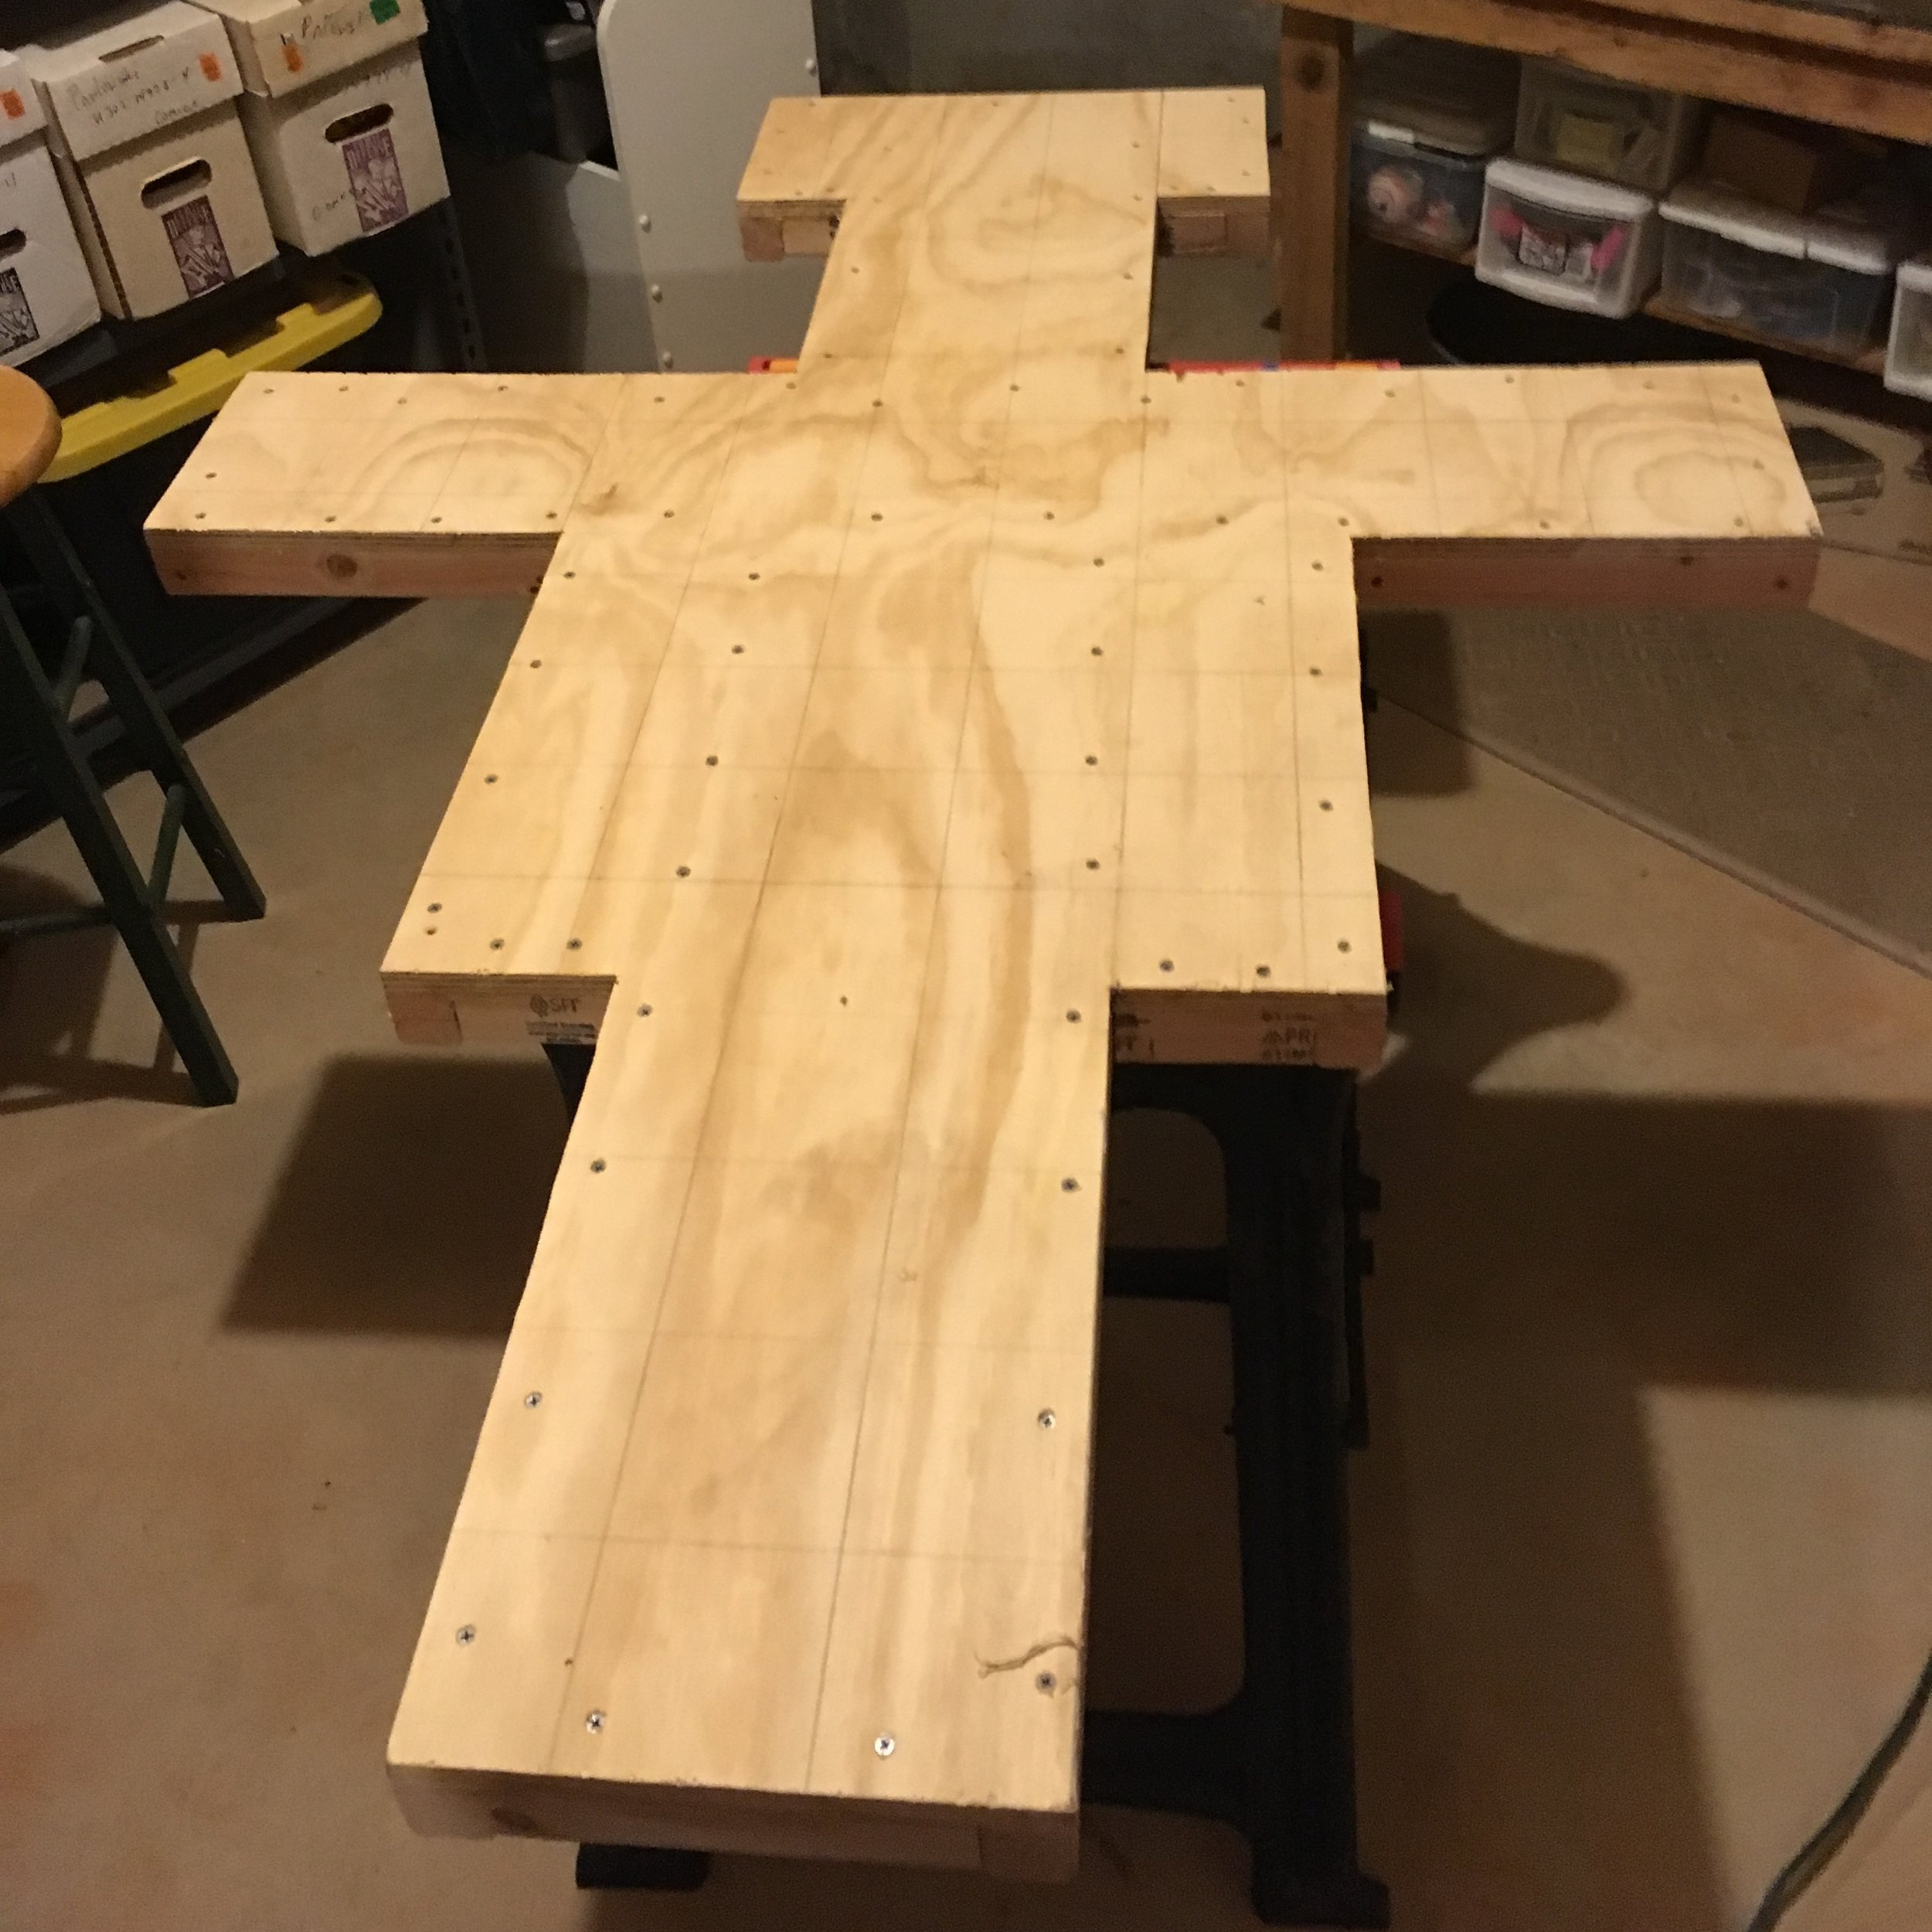 I transferred the scaled grid onto the sheet of plywood and drew the outside of the cross. From there, I trimmed it out, then screwed on a frame on the back for stability. It is important that the plywood doesn't warp or bend, even with changes in temperature and humidity and the stresses of moving and hanging the piece.